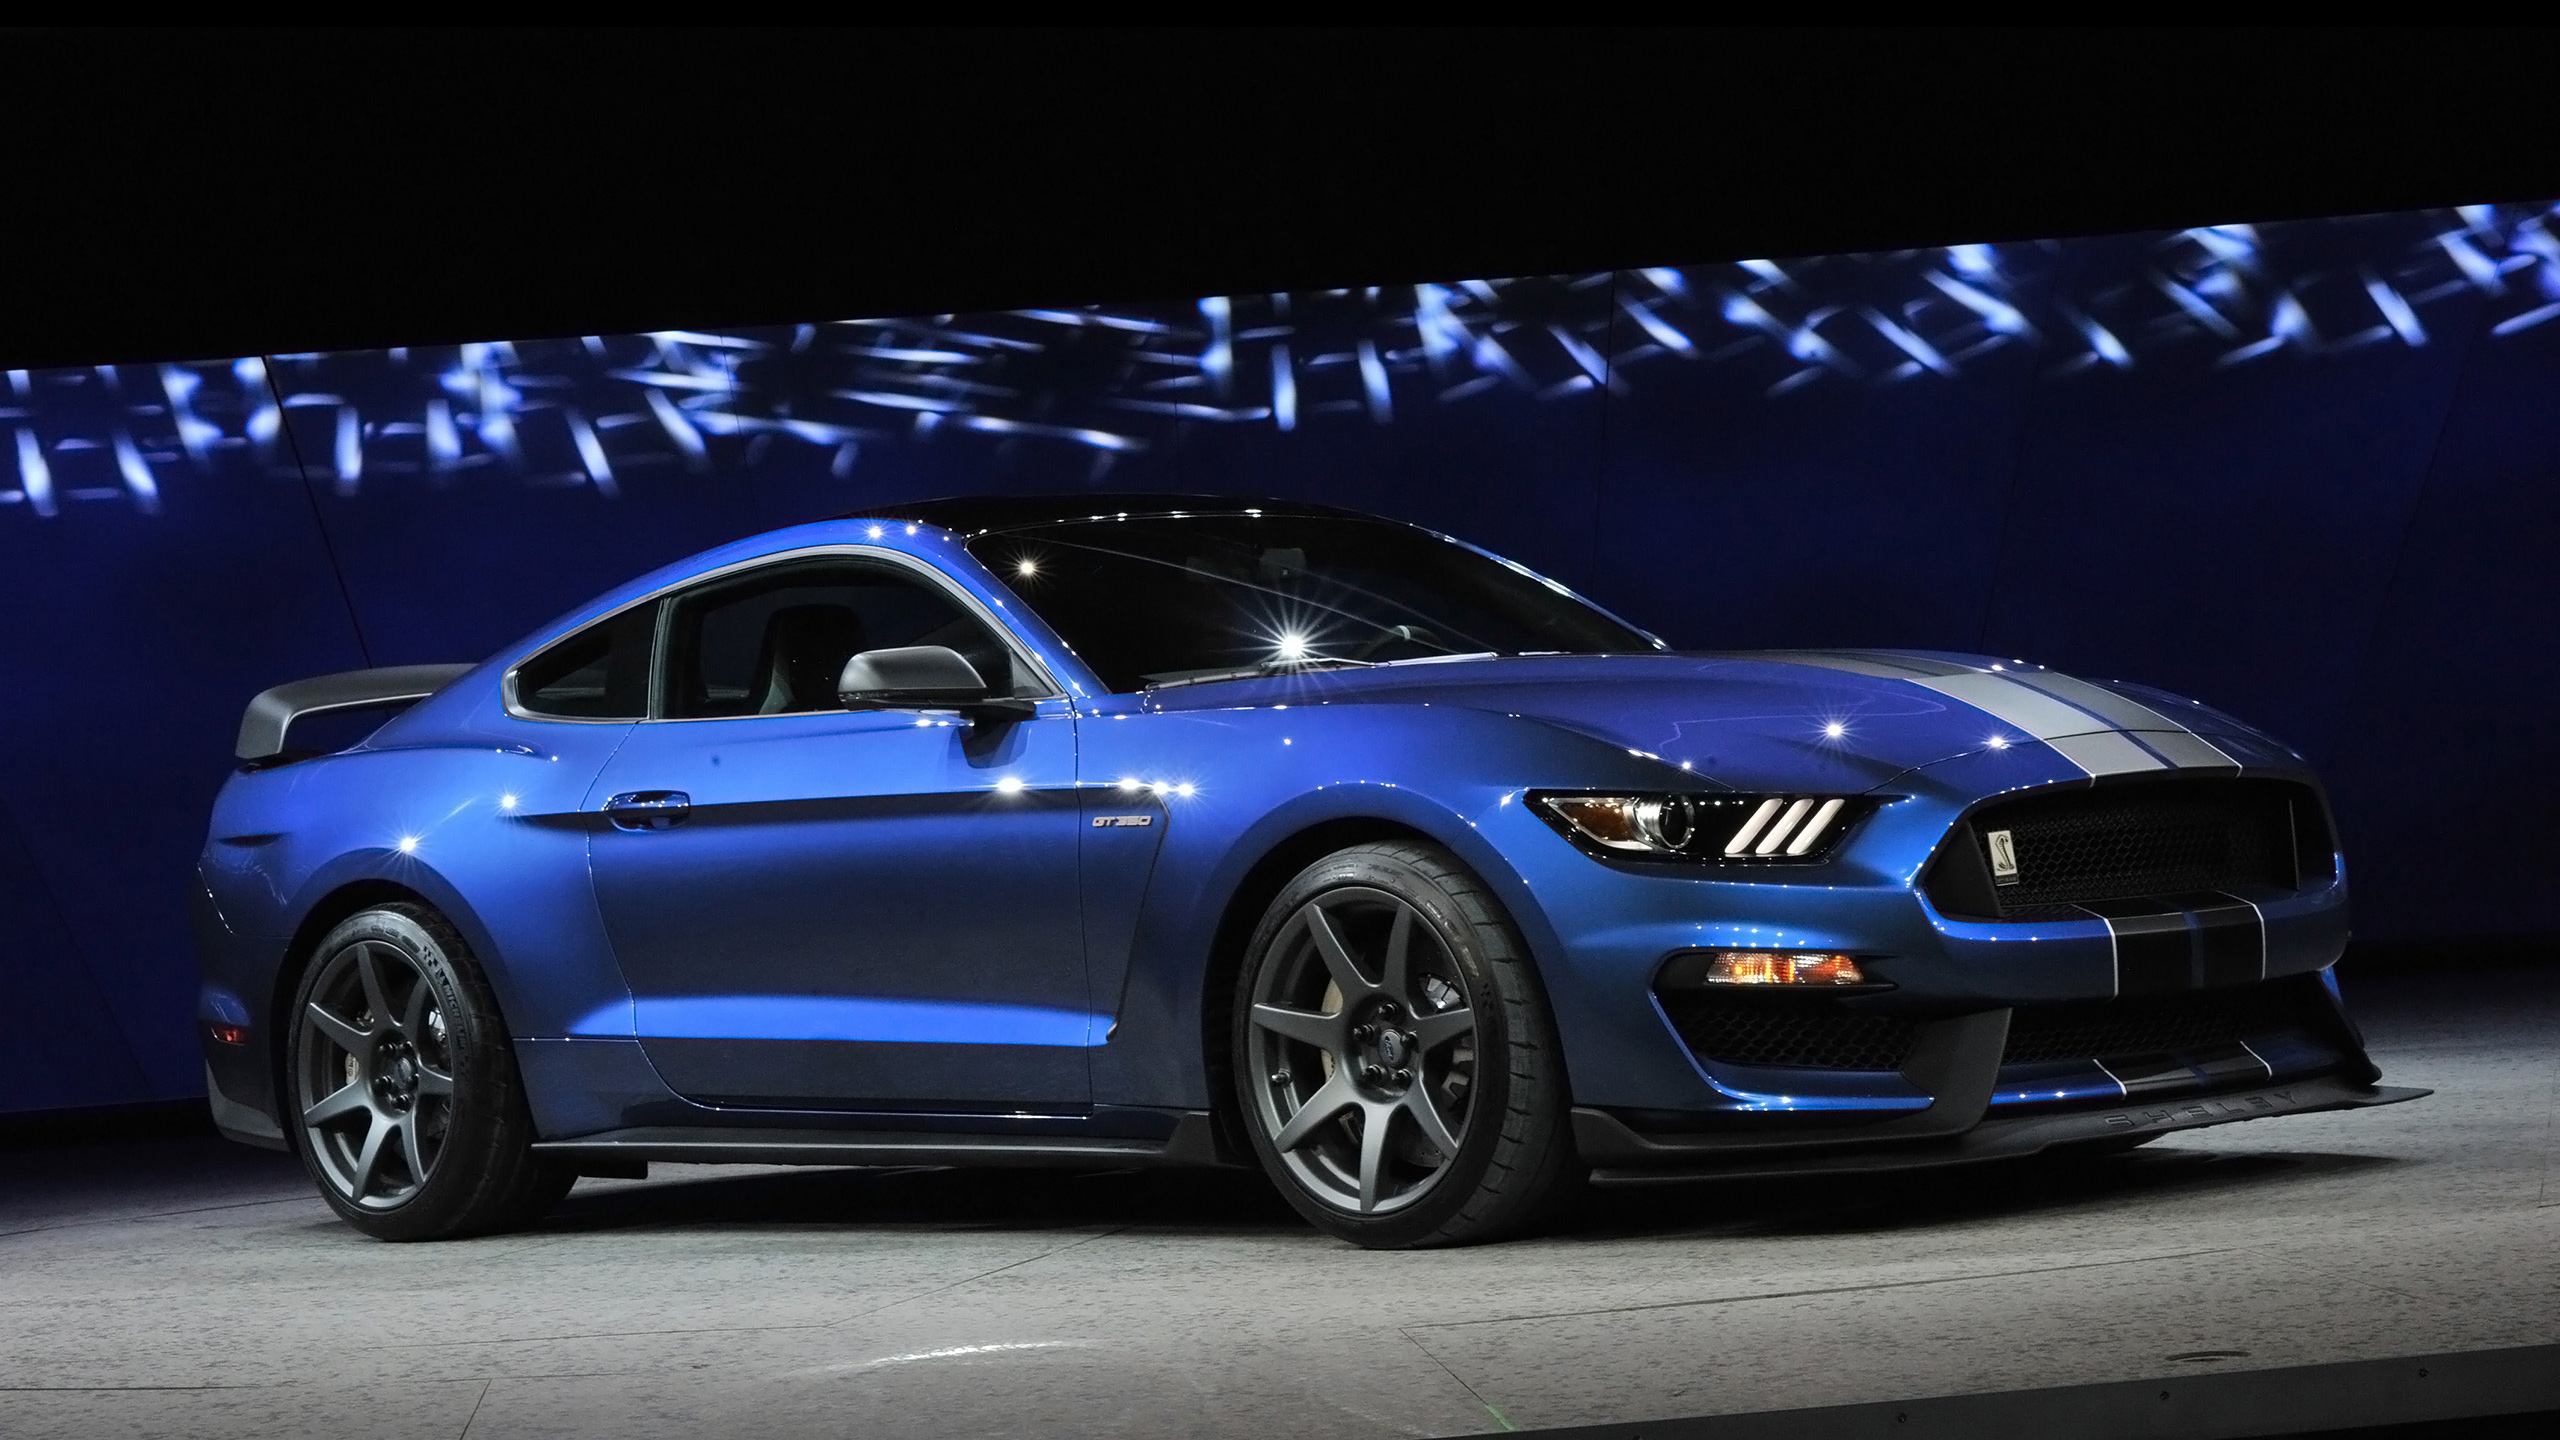 Ford Mustang Shelby Gt350r 2016 Ford Shelby Gt350r Mustang 2 Wallpaper Hd Car